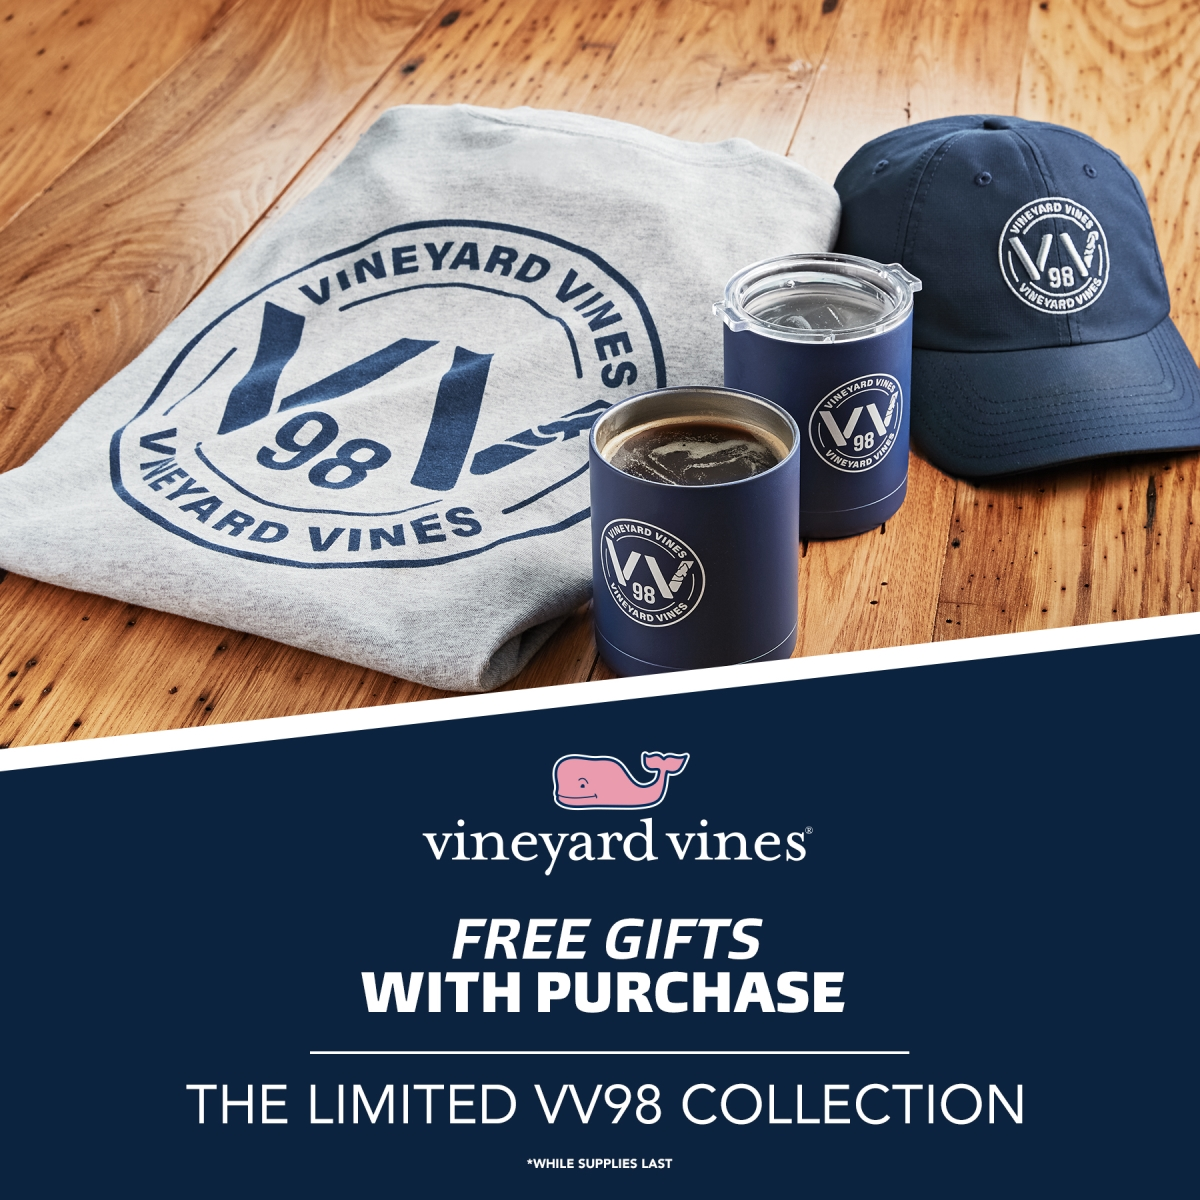 The Limited VV98 Collection from vineyard vines